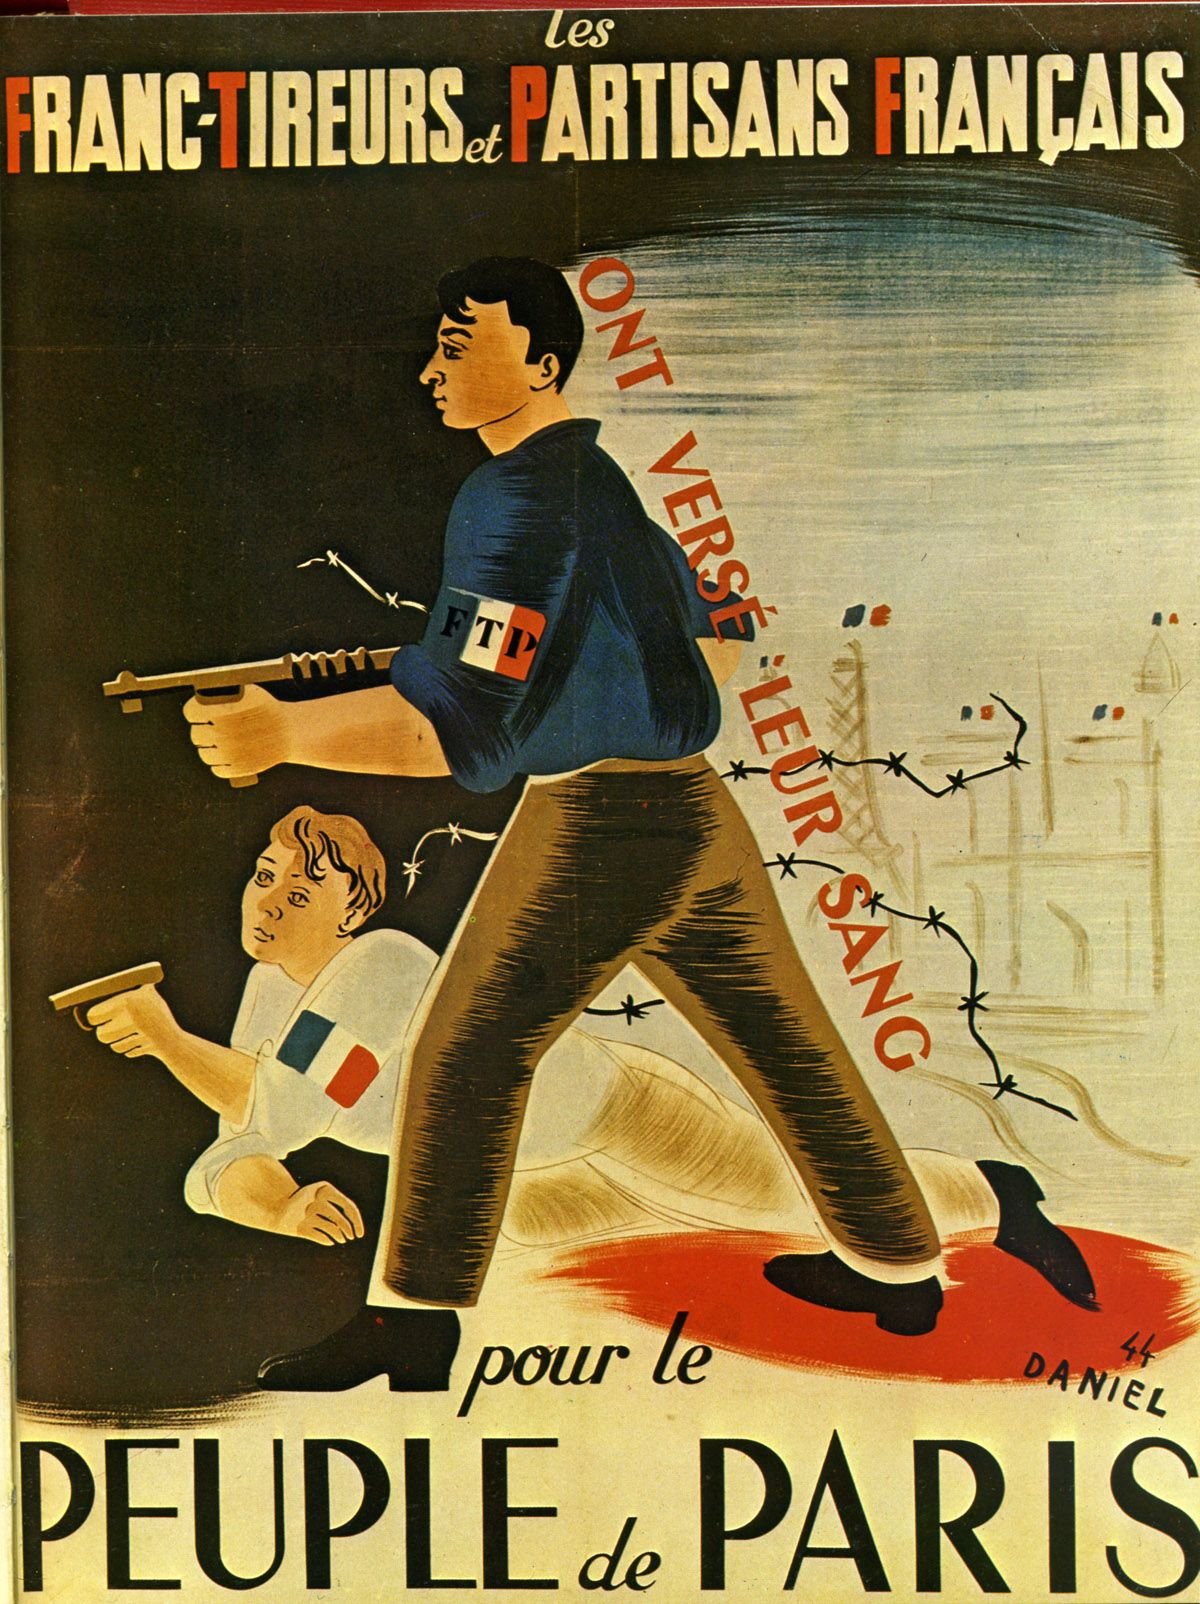 WW2 French resistance poster | Meet MythAmerica: World War 1 and 2 ...